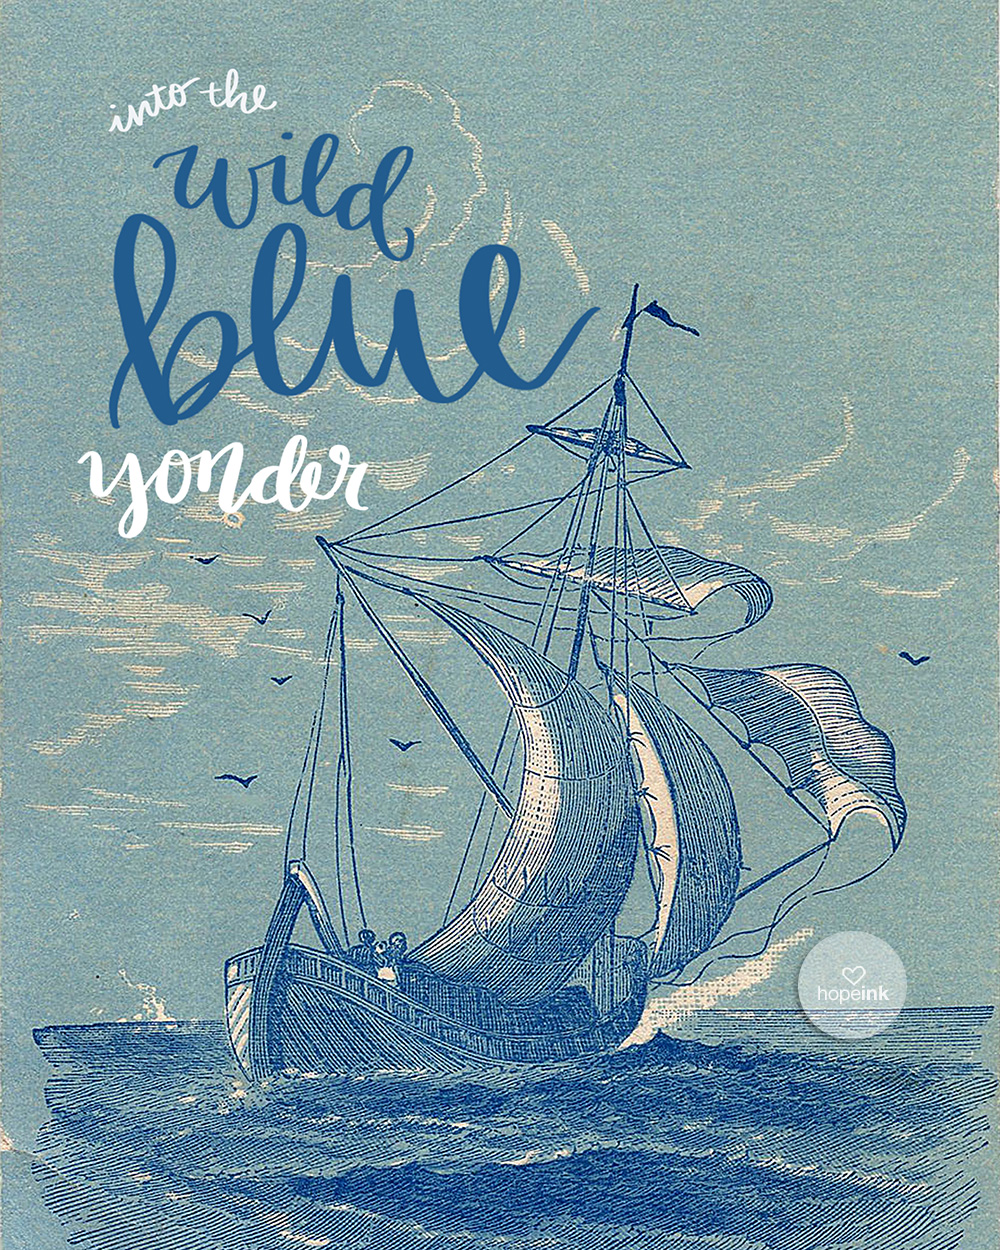 Into The Wild Blue Yonder   Hand Lettered Nautical Art   Hope Ink.jpg